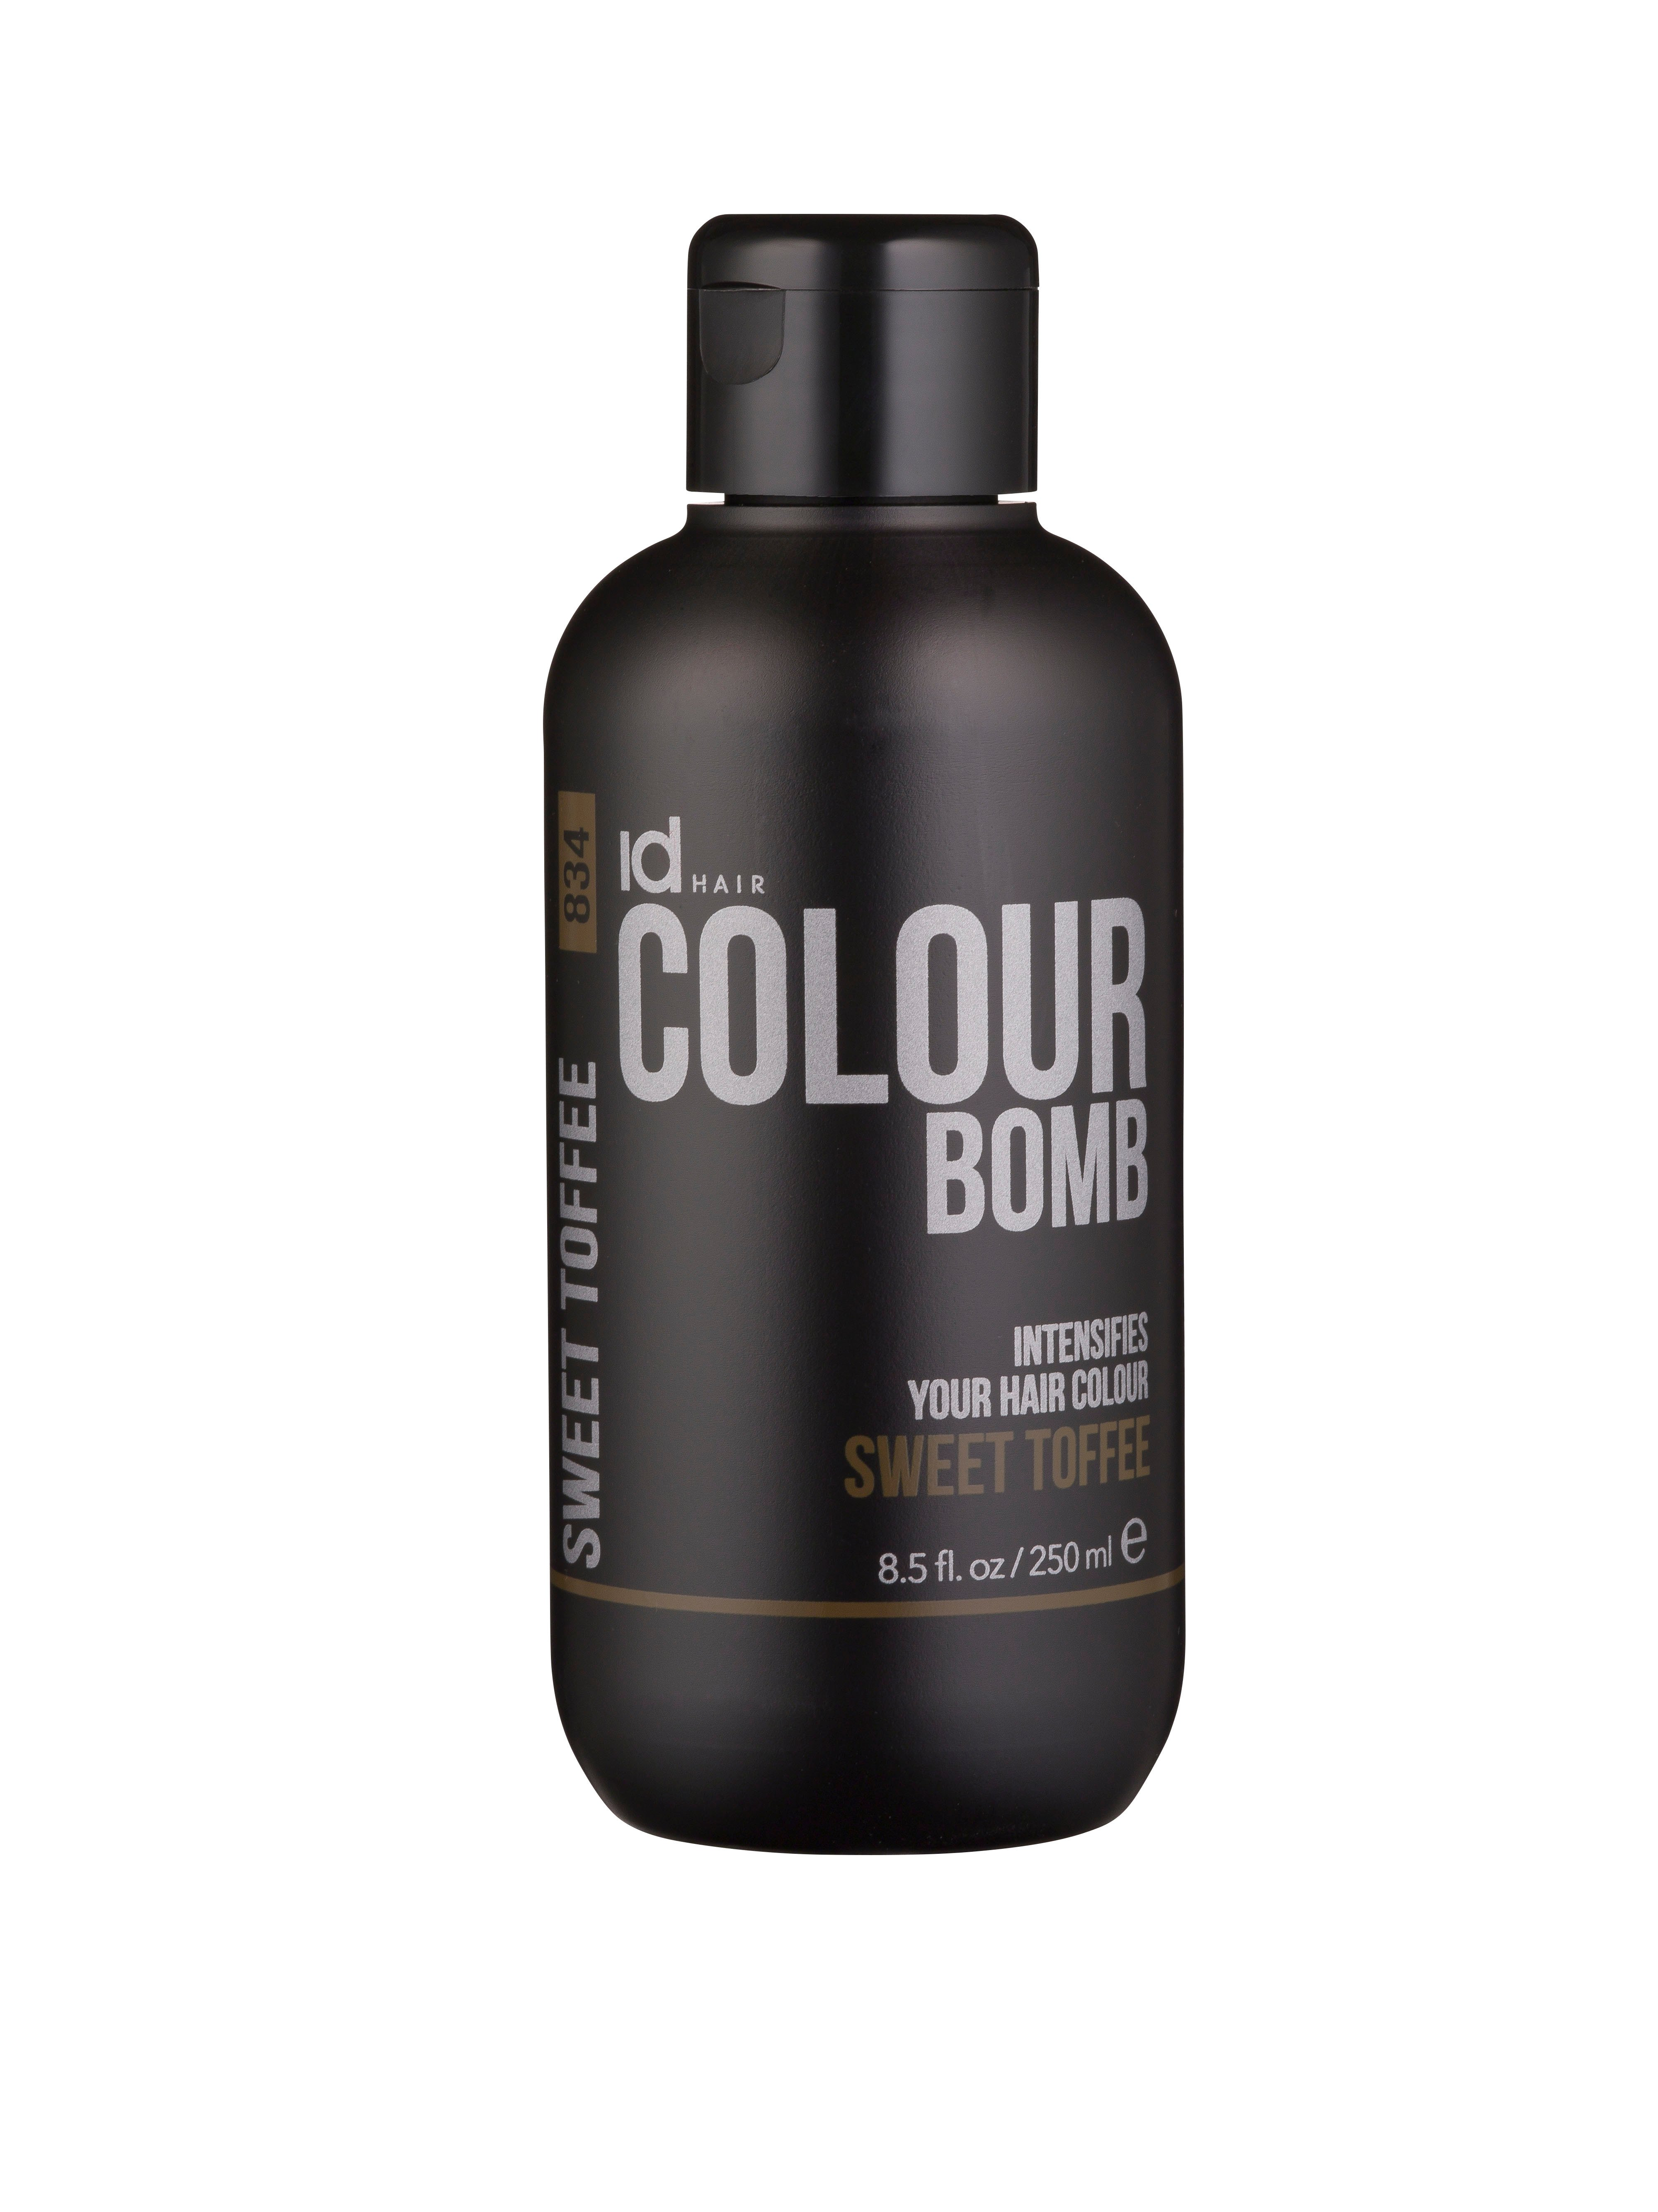 IdHAIR - Colour Bomb 250 ml - Sweet Toffee